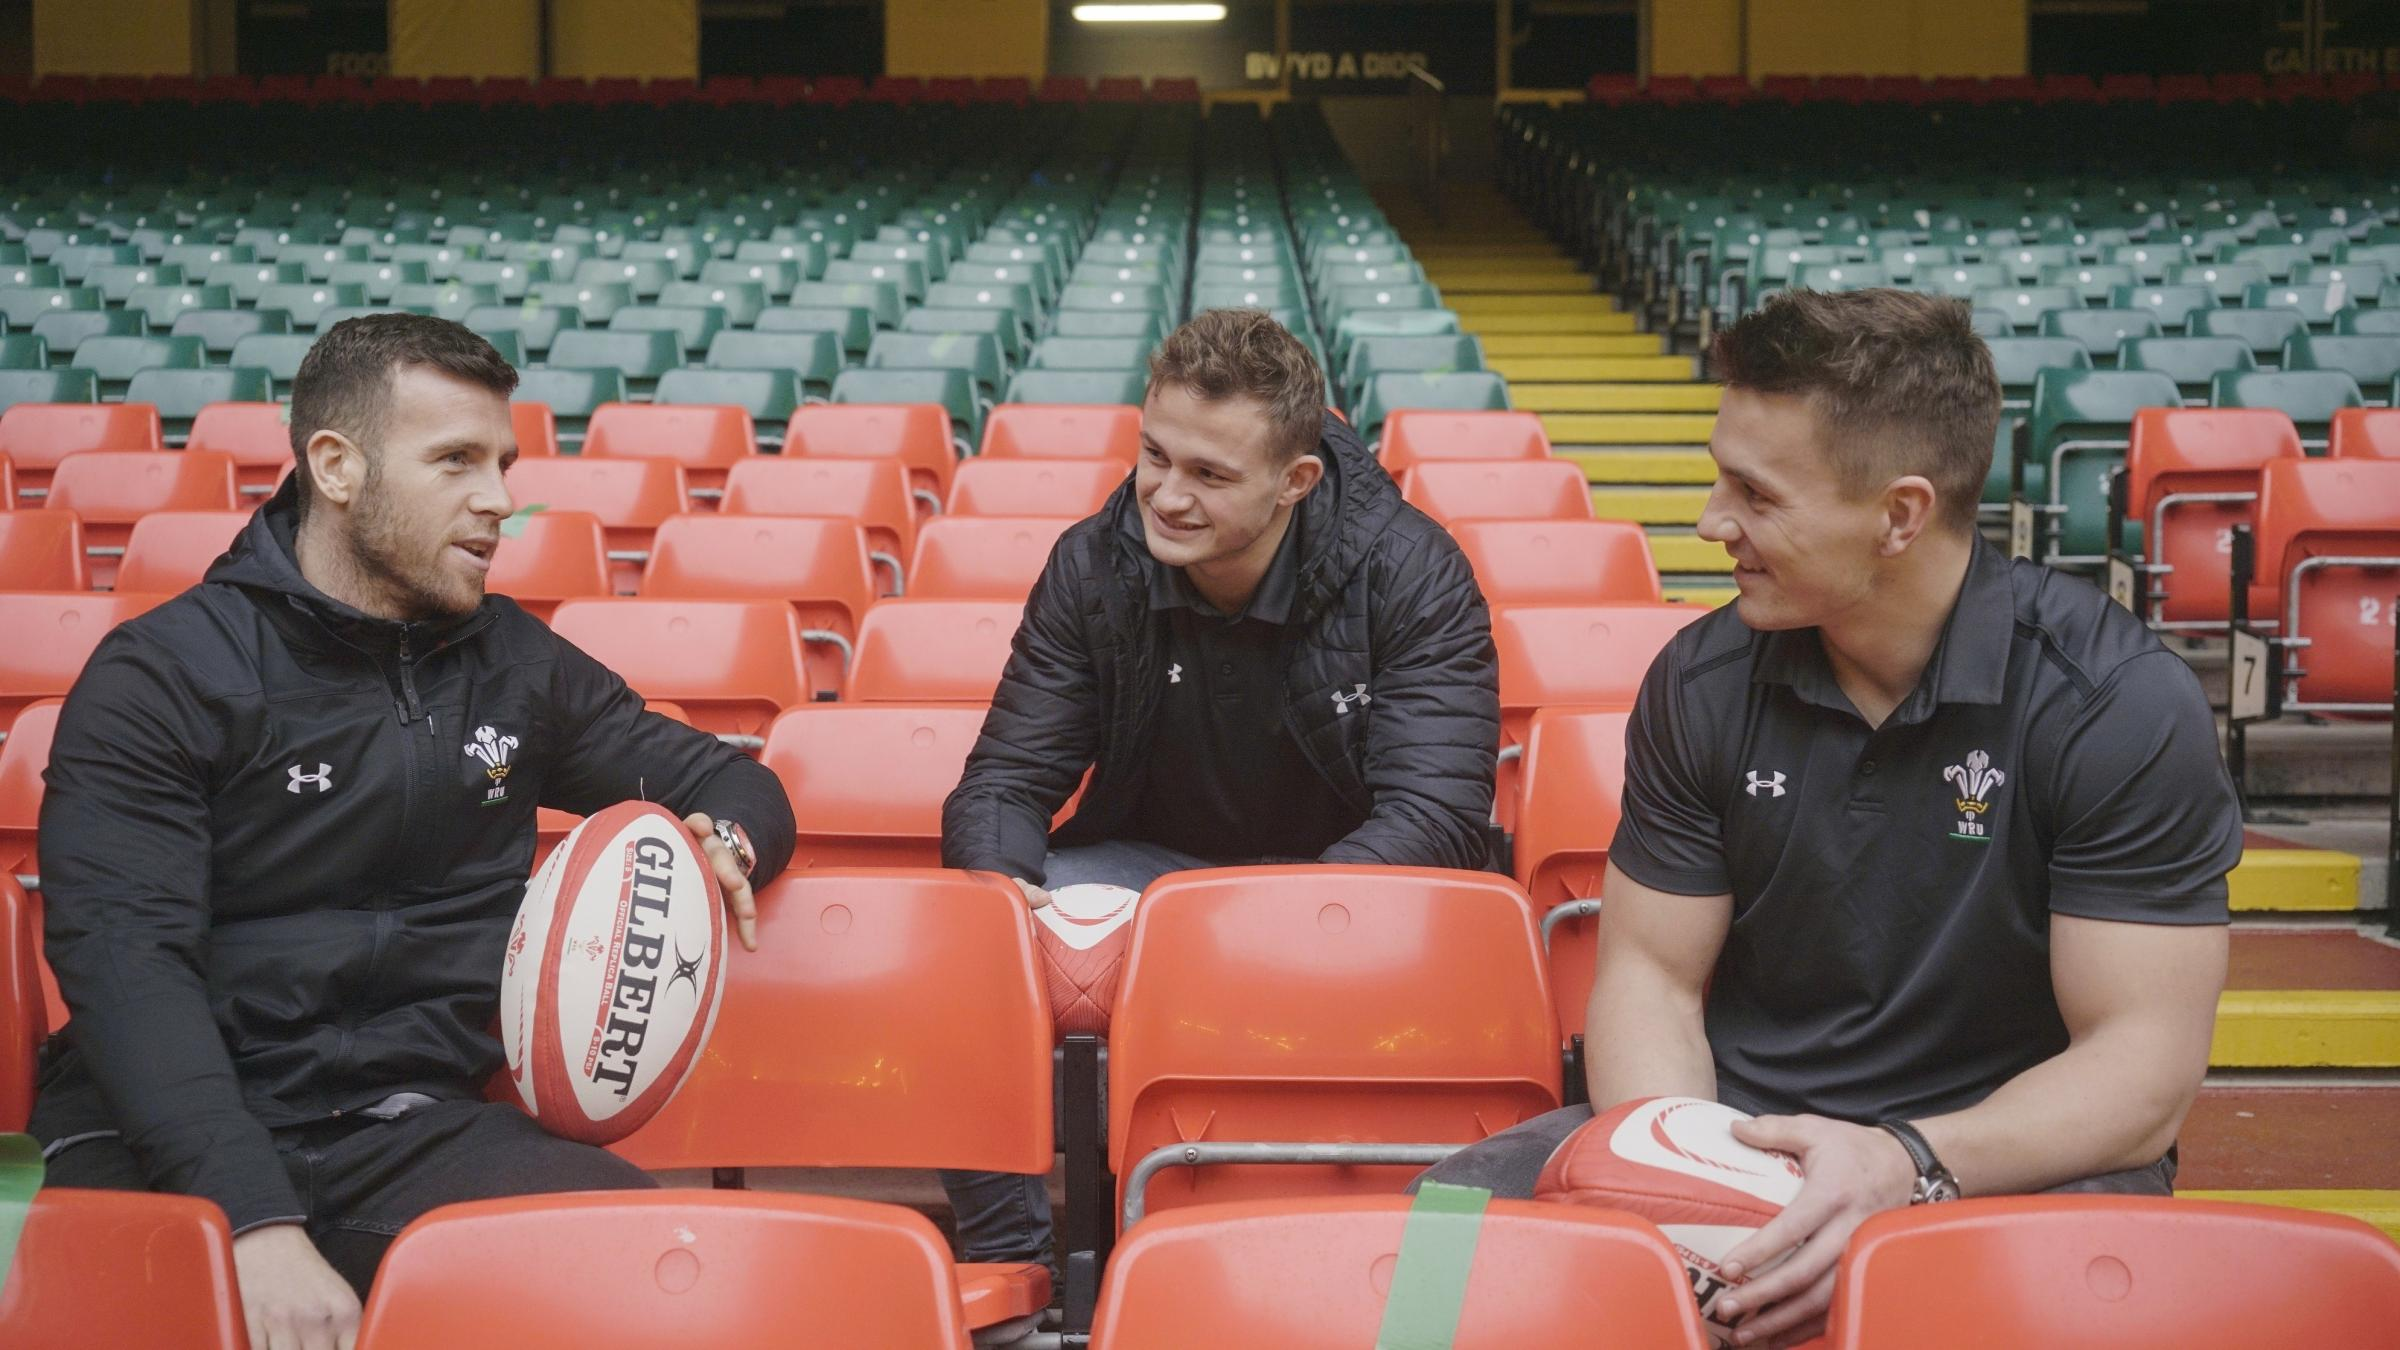 Wales rugby internationals Gareth Davies, Hallam Amos and Jonathan Davies are supporting Principality's kit donation scheme for School of Hard Knocks charity.